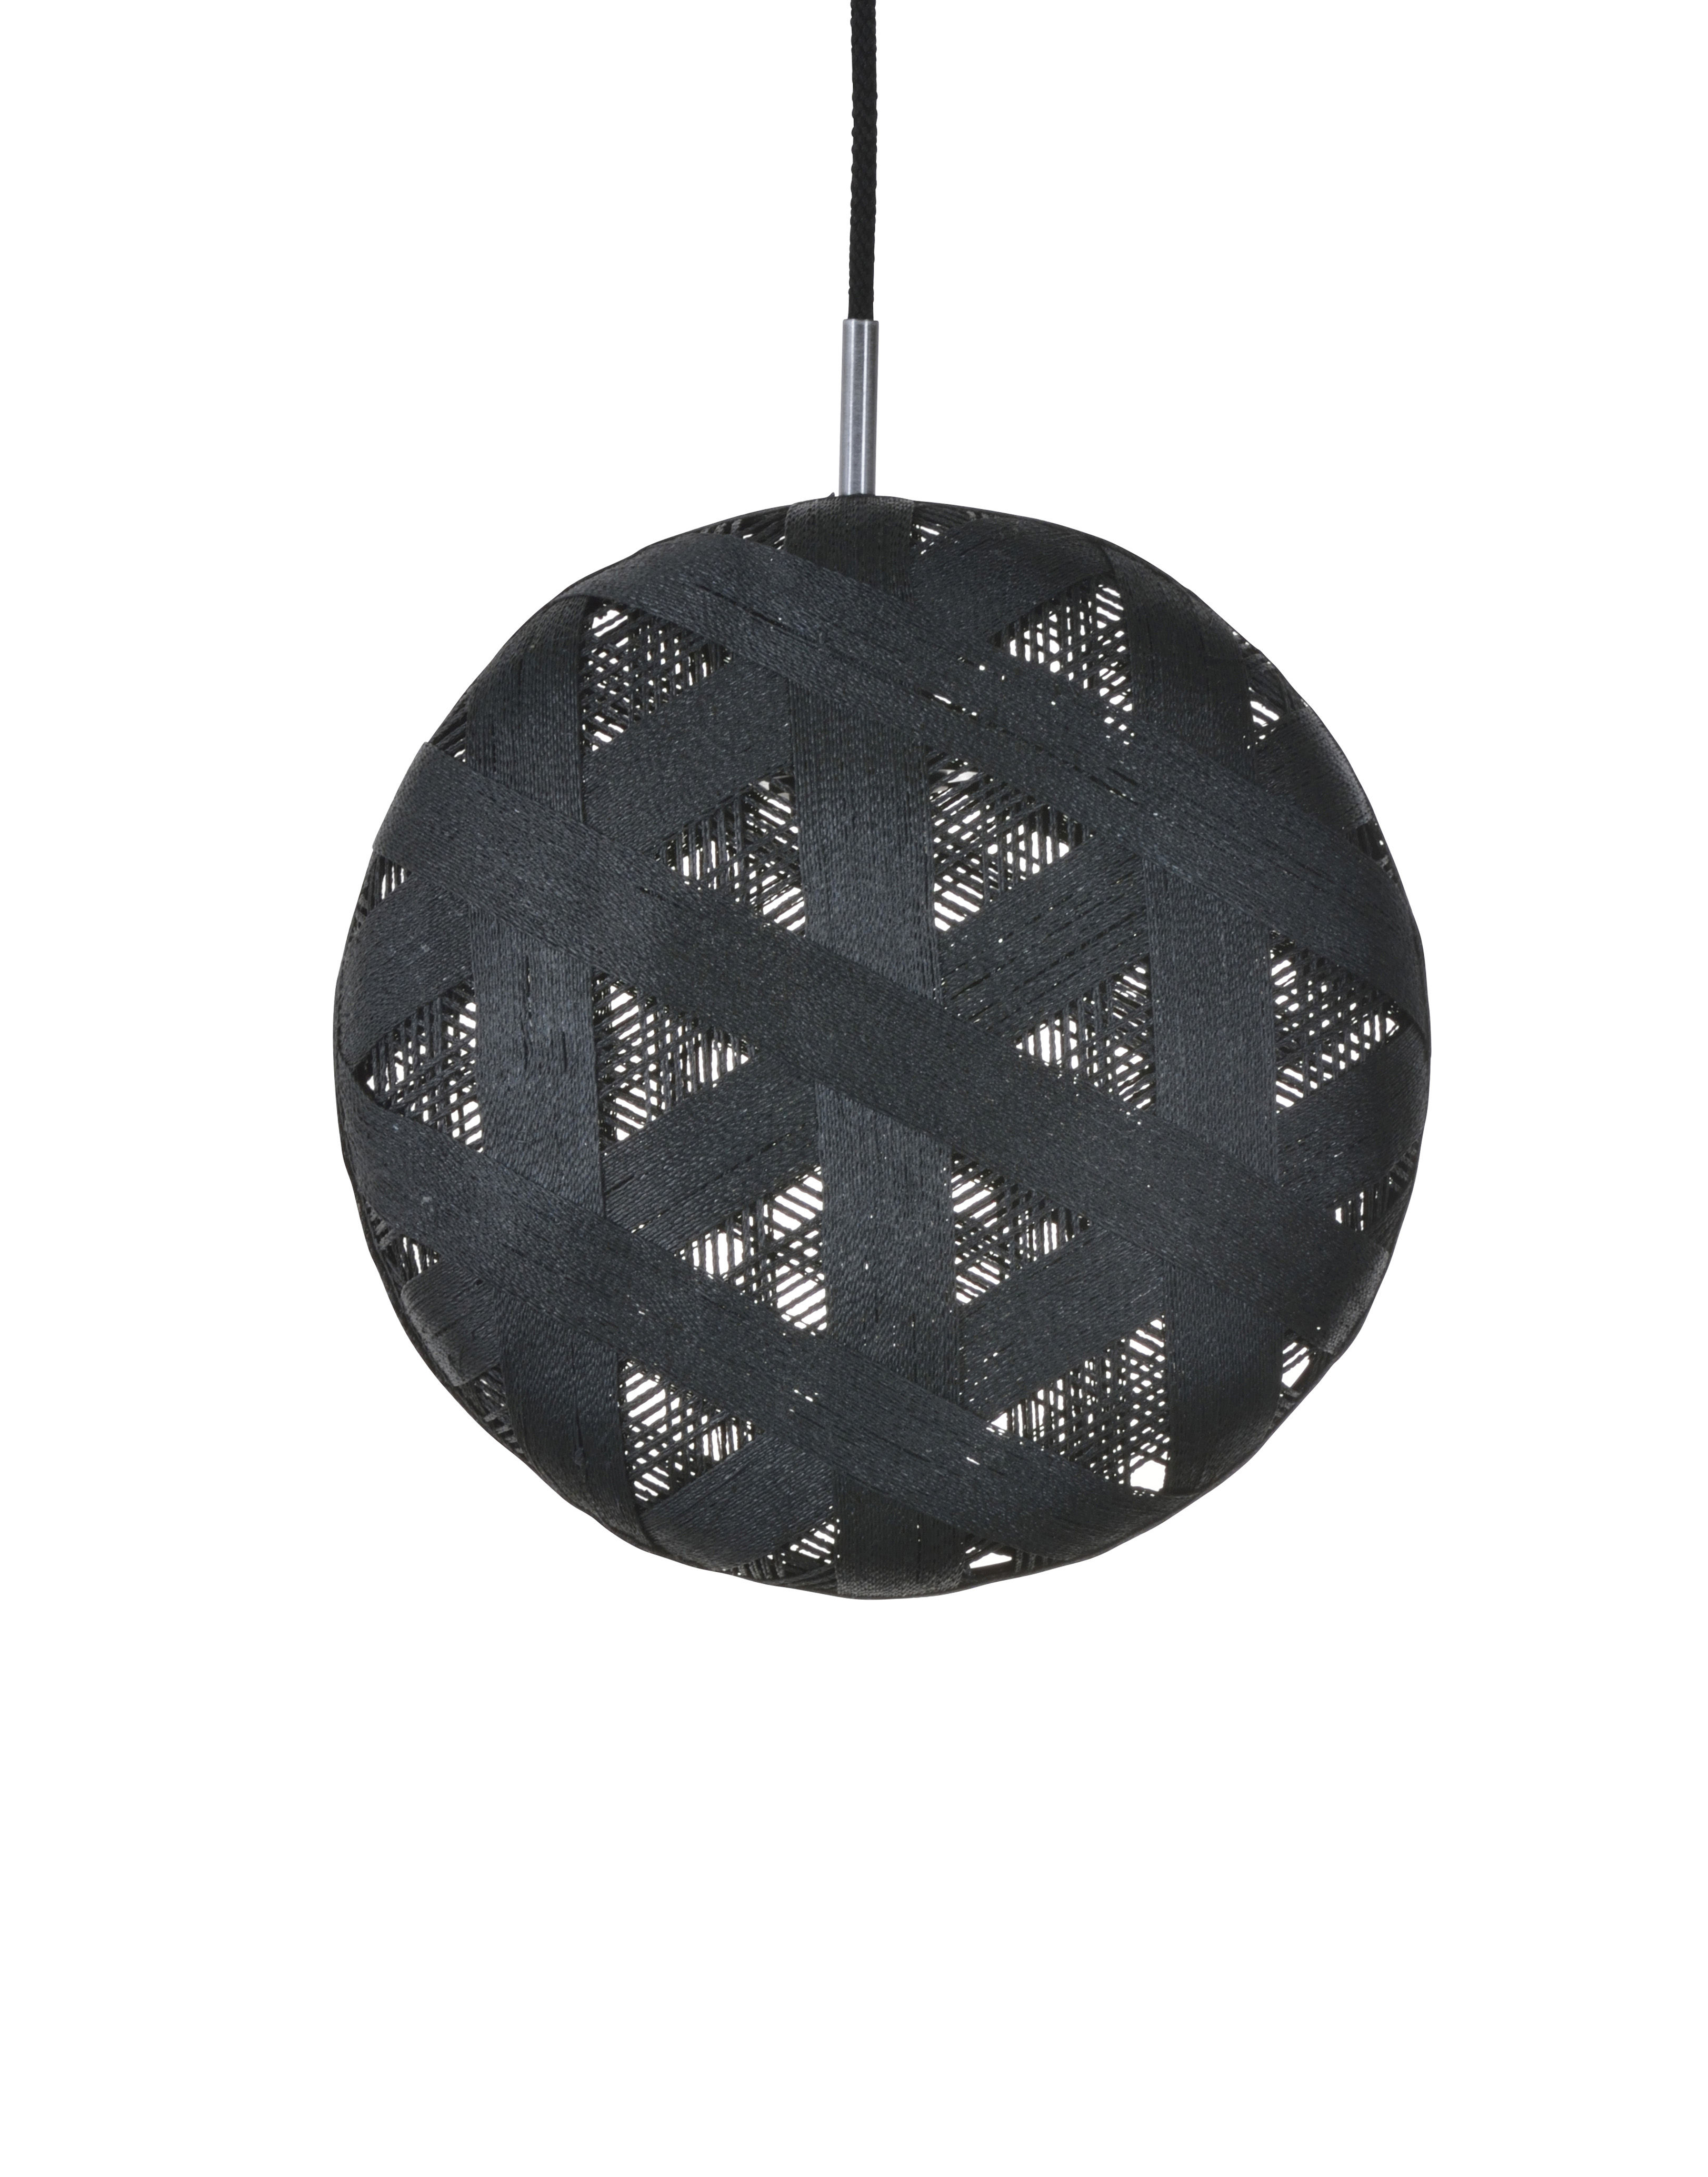 Lighting - Pendant Lighting - Chanpen Hexagon Pendant - Ø 36 cm by Forestier - Black / Triangle patterns - Woven acaba